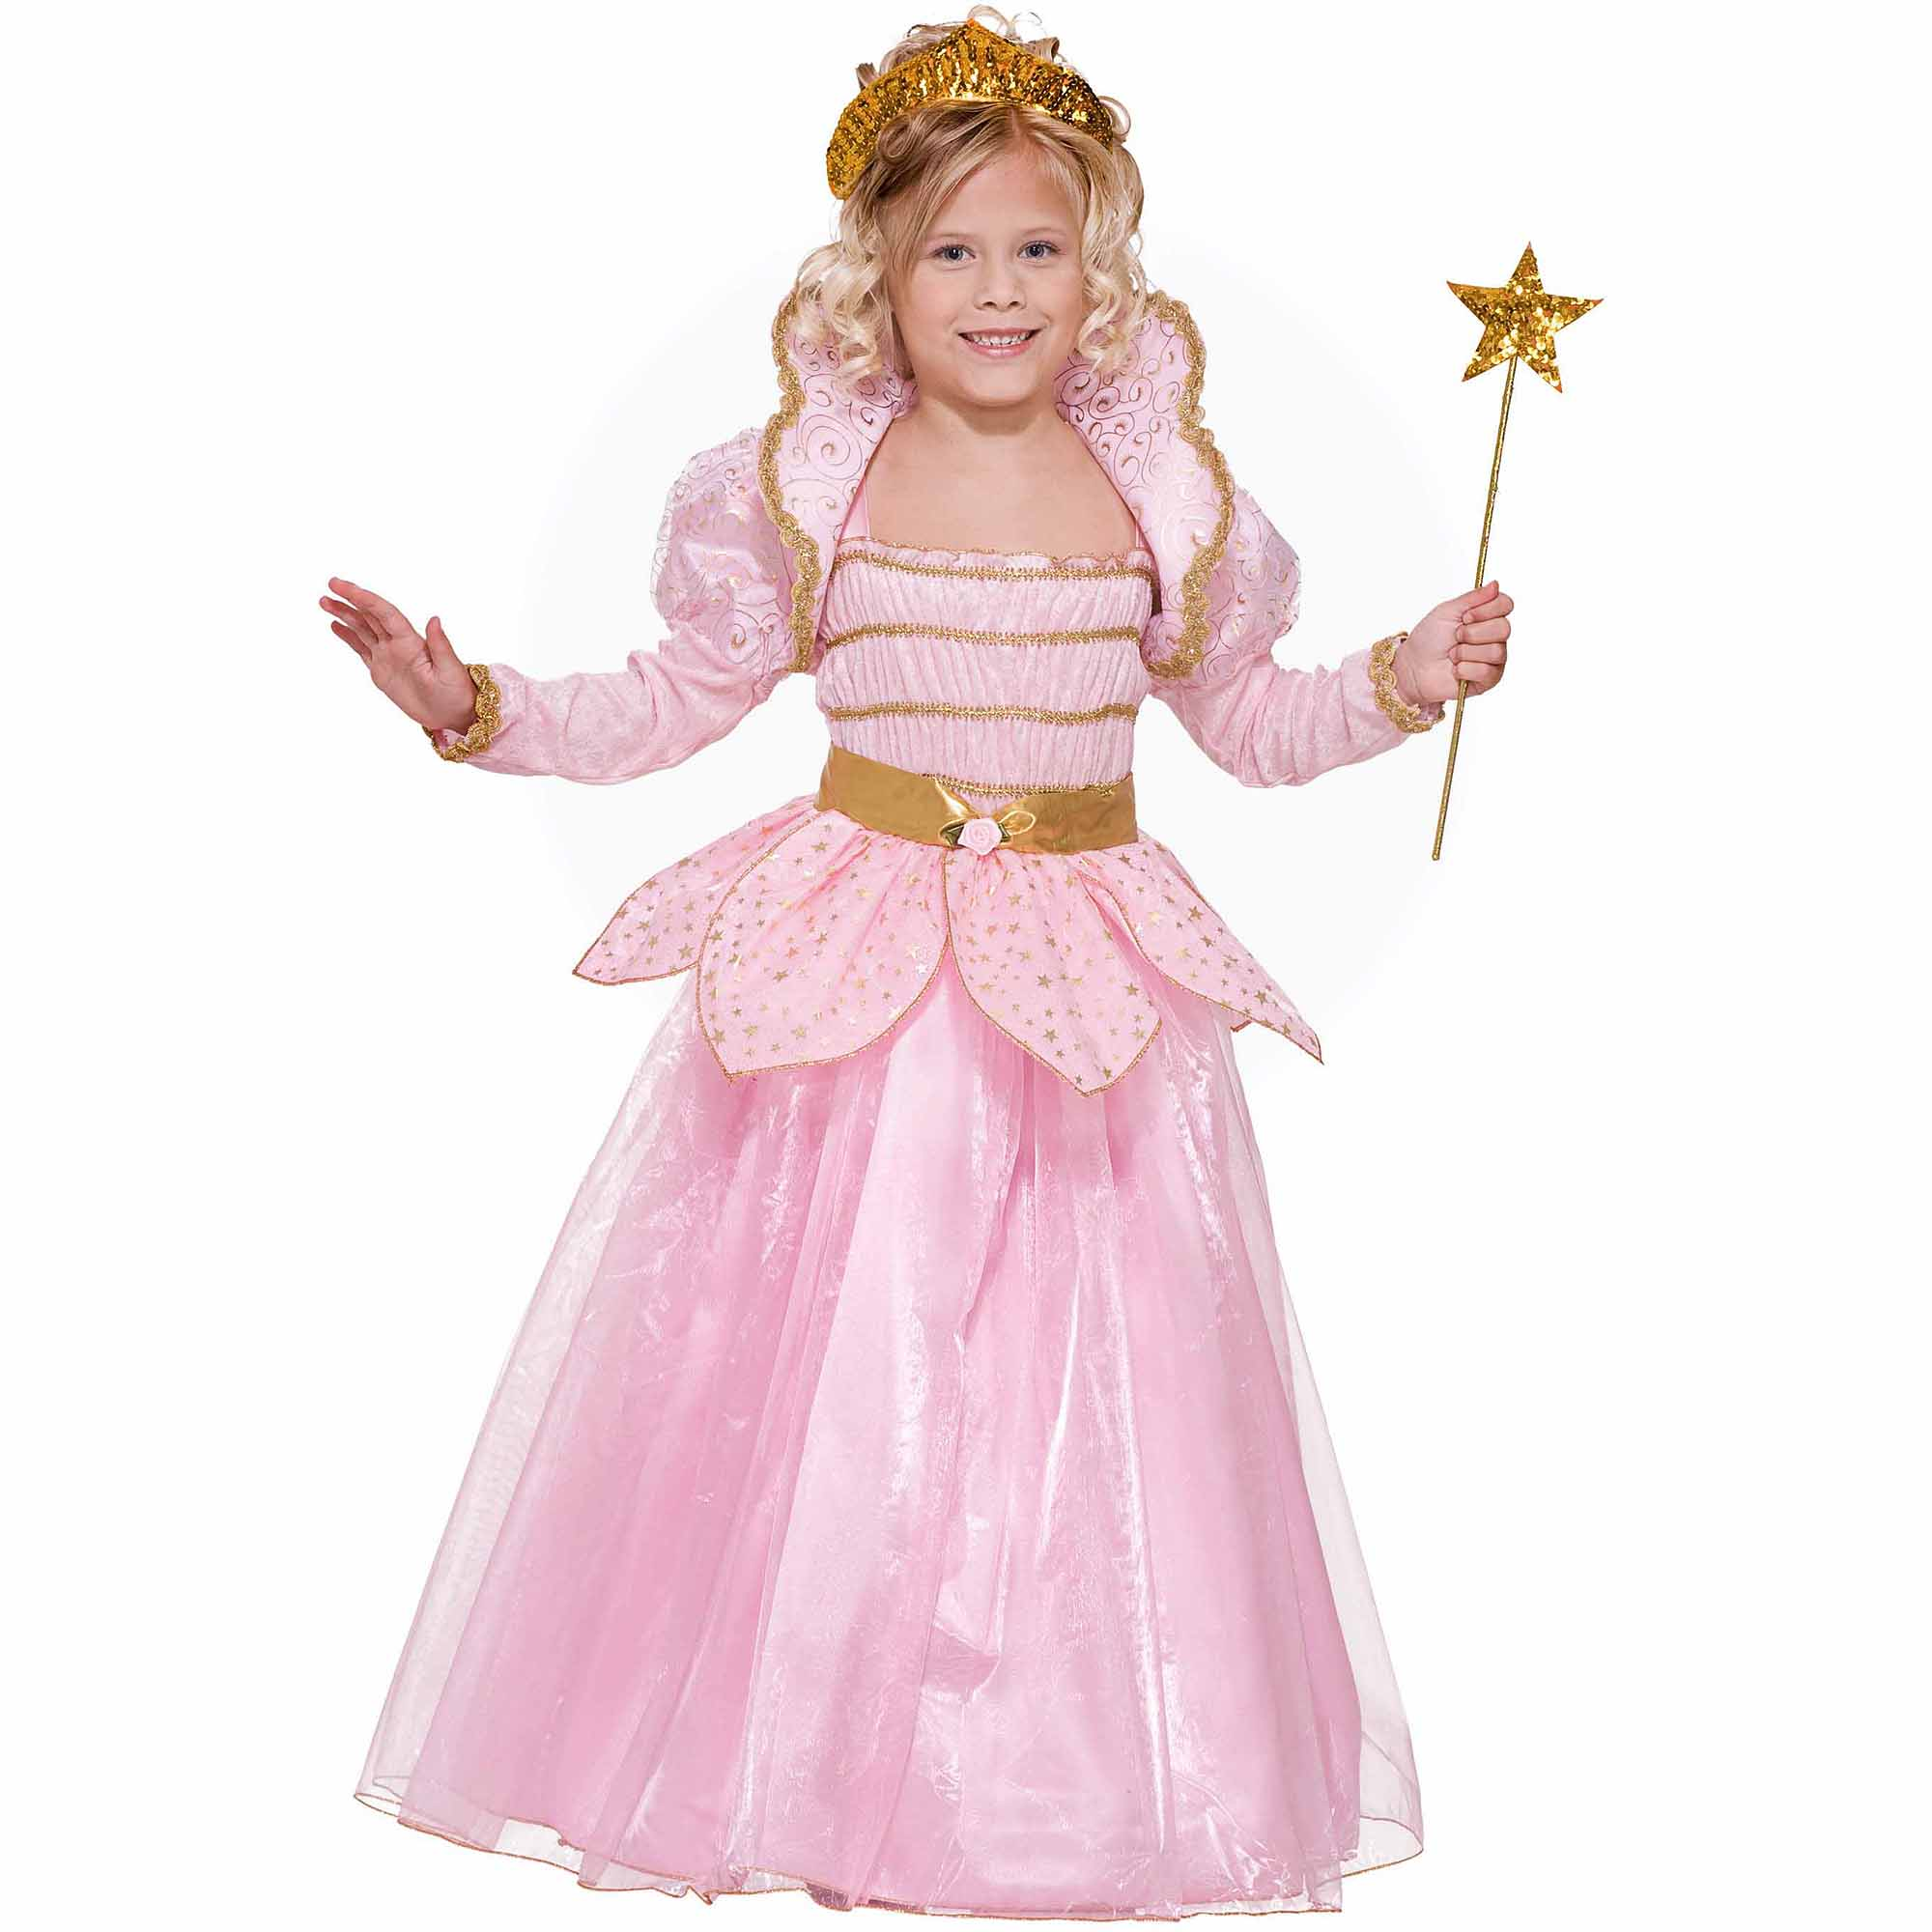 sc 1 st  Walmart & Little Pink Princess Child Halloween Costume - Walmart.com